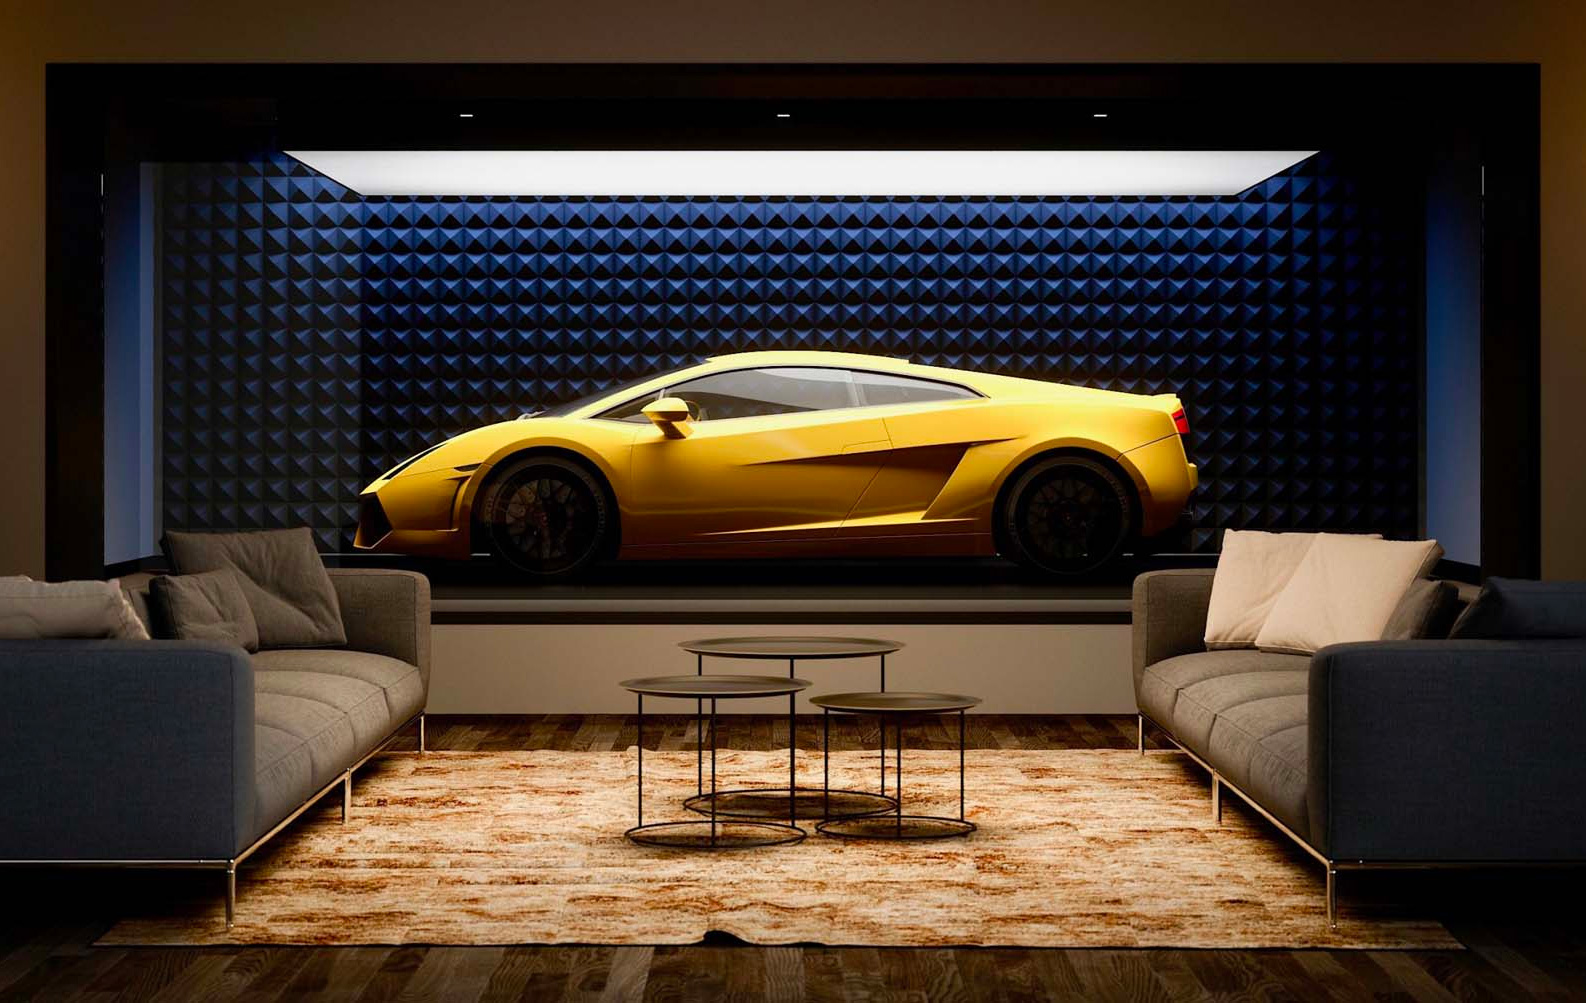 Supercar Capsule is a Luxury Home for the Love of Your Life at werd.com